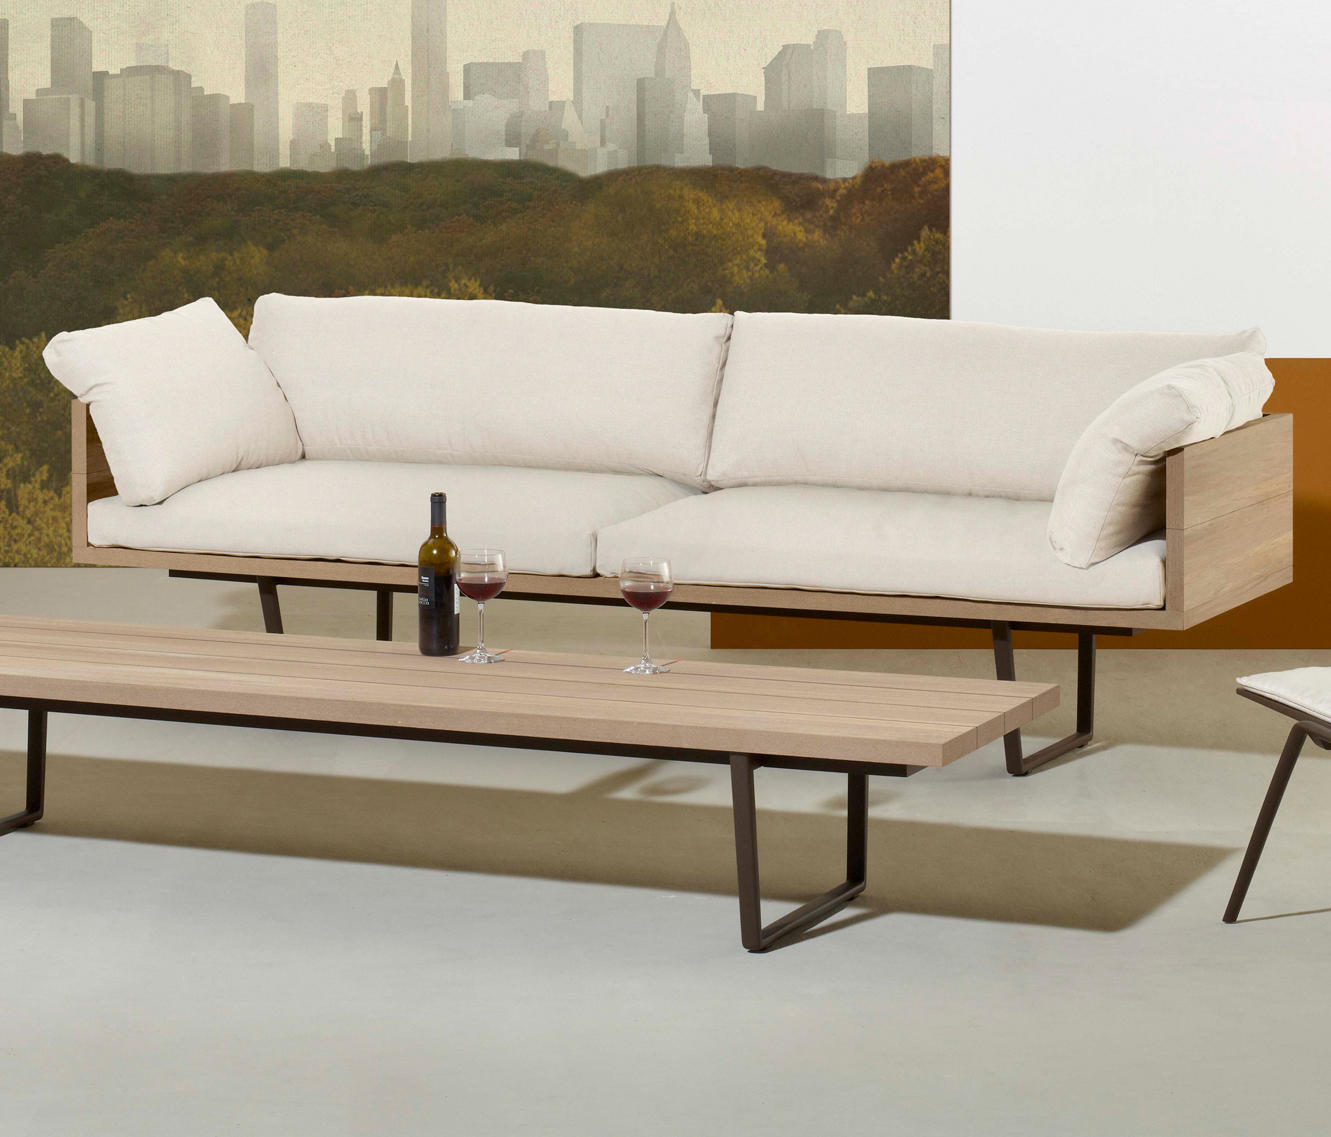 new wood plan sofa sofas from fast architonic rh architonic com plans of action plain sofa cushions